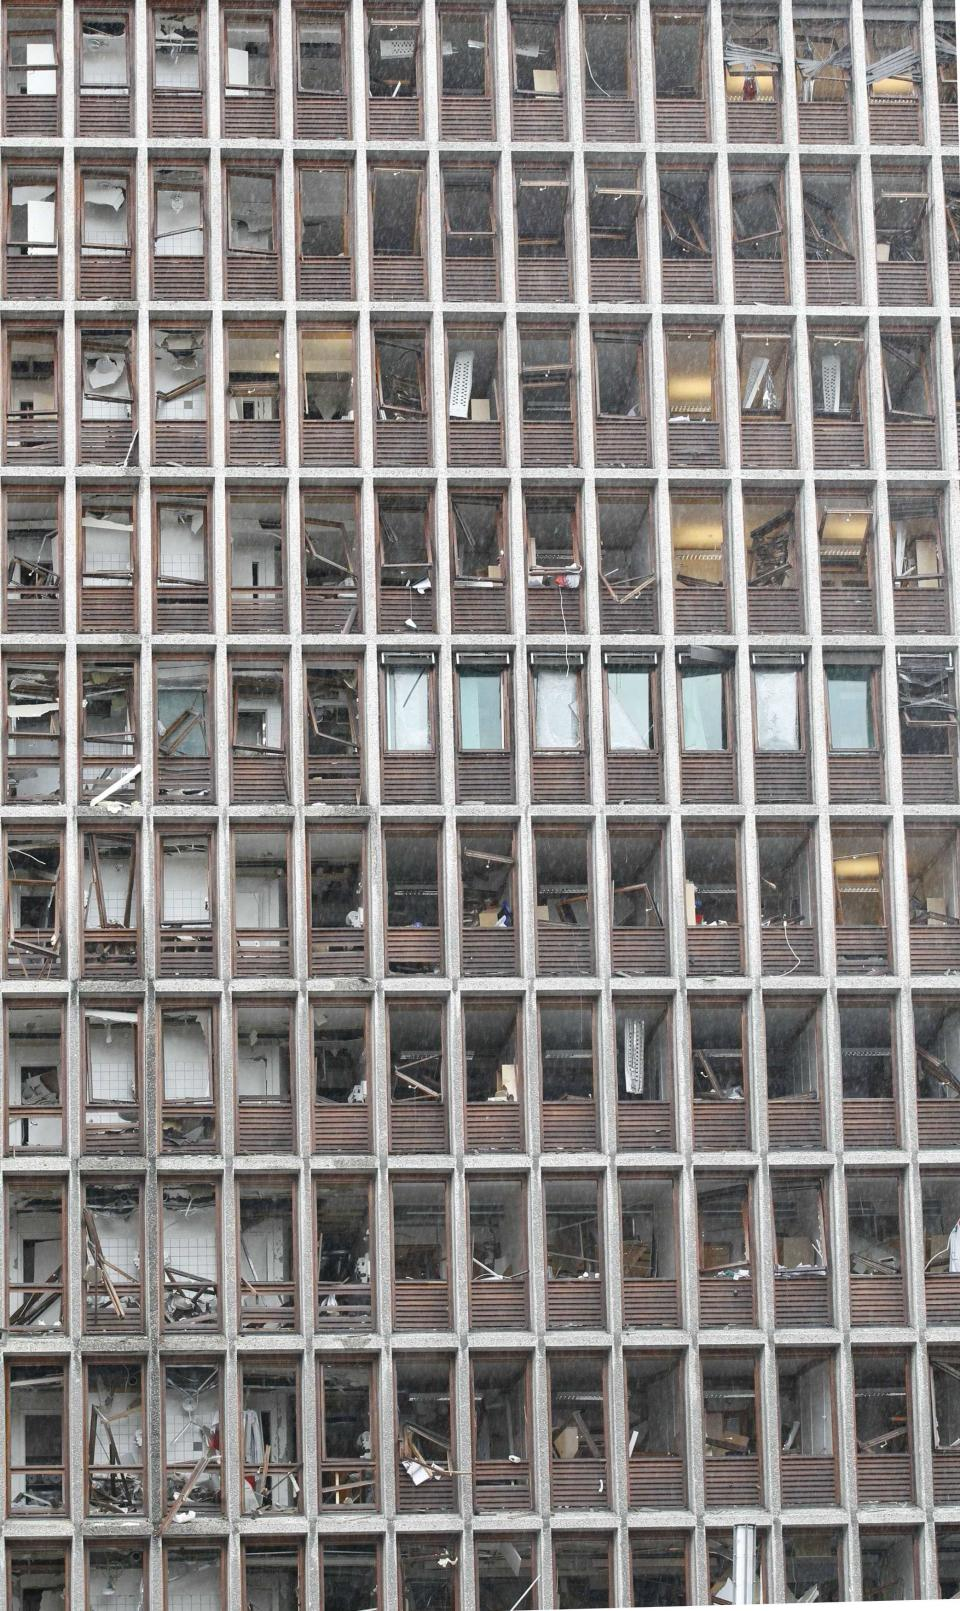 Damaged windows are seen on a building in central Oslo, Norway on Friday, July 22, 2011 after a bomb ripped open buildings in the heart of Norway's government. (AP Photo/Scanpix, Berit Roald)